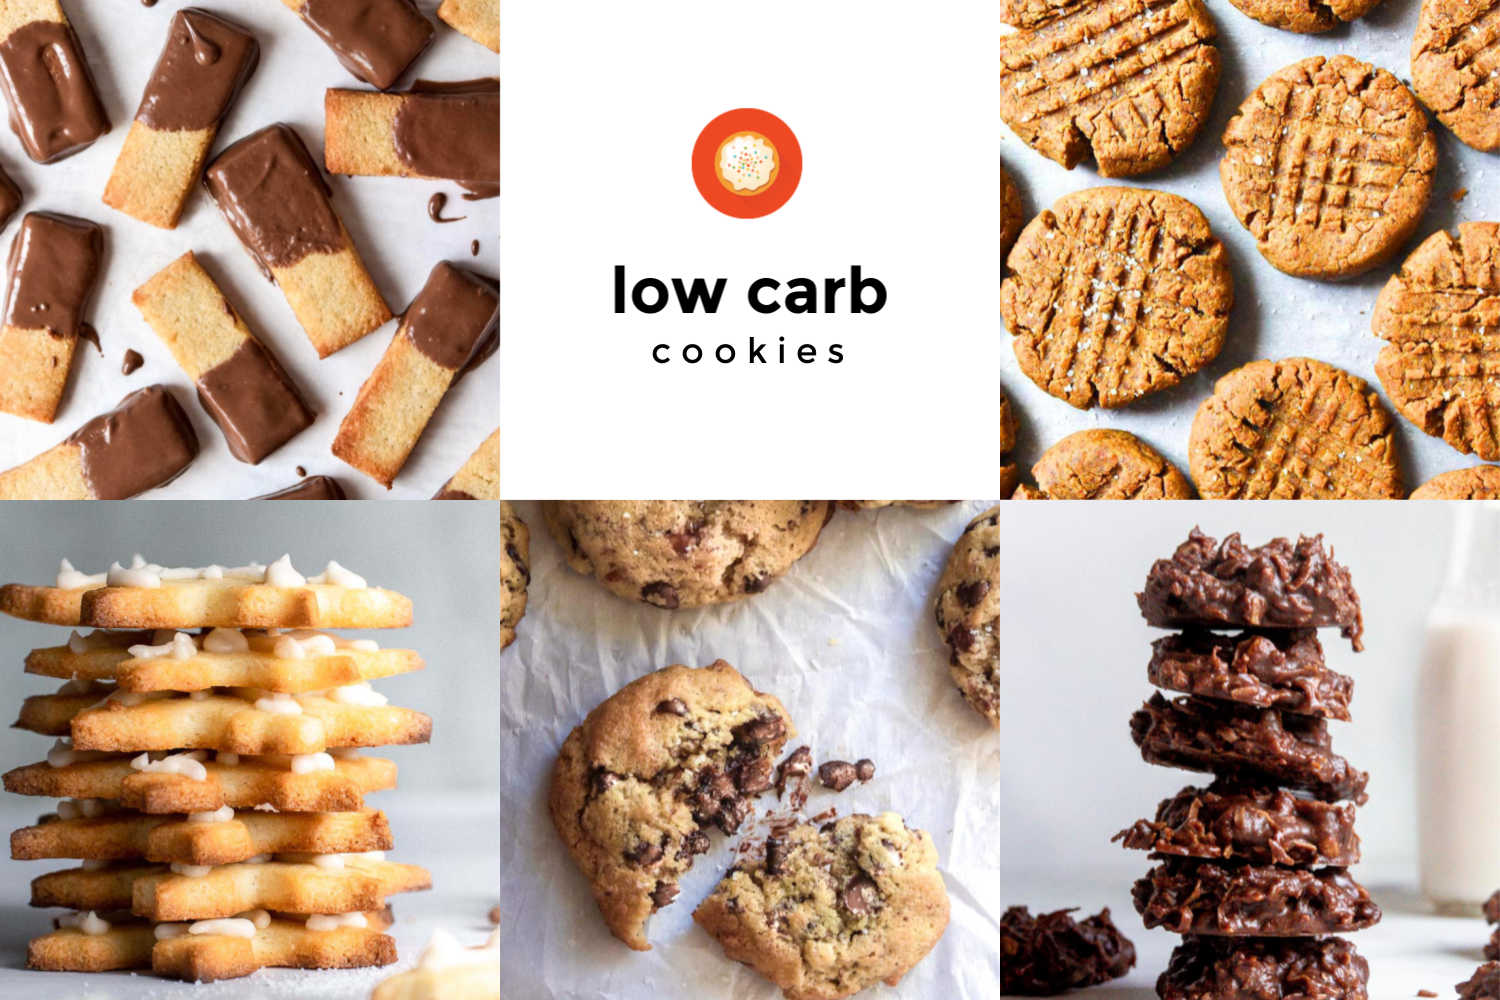 Low carb cookies